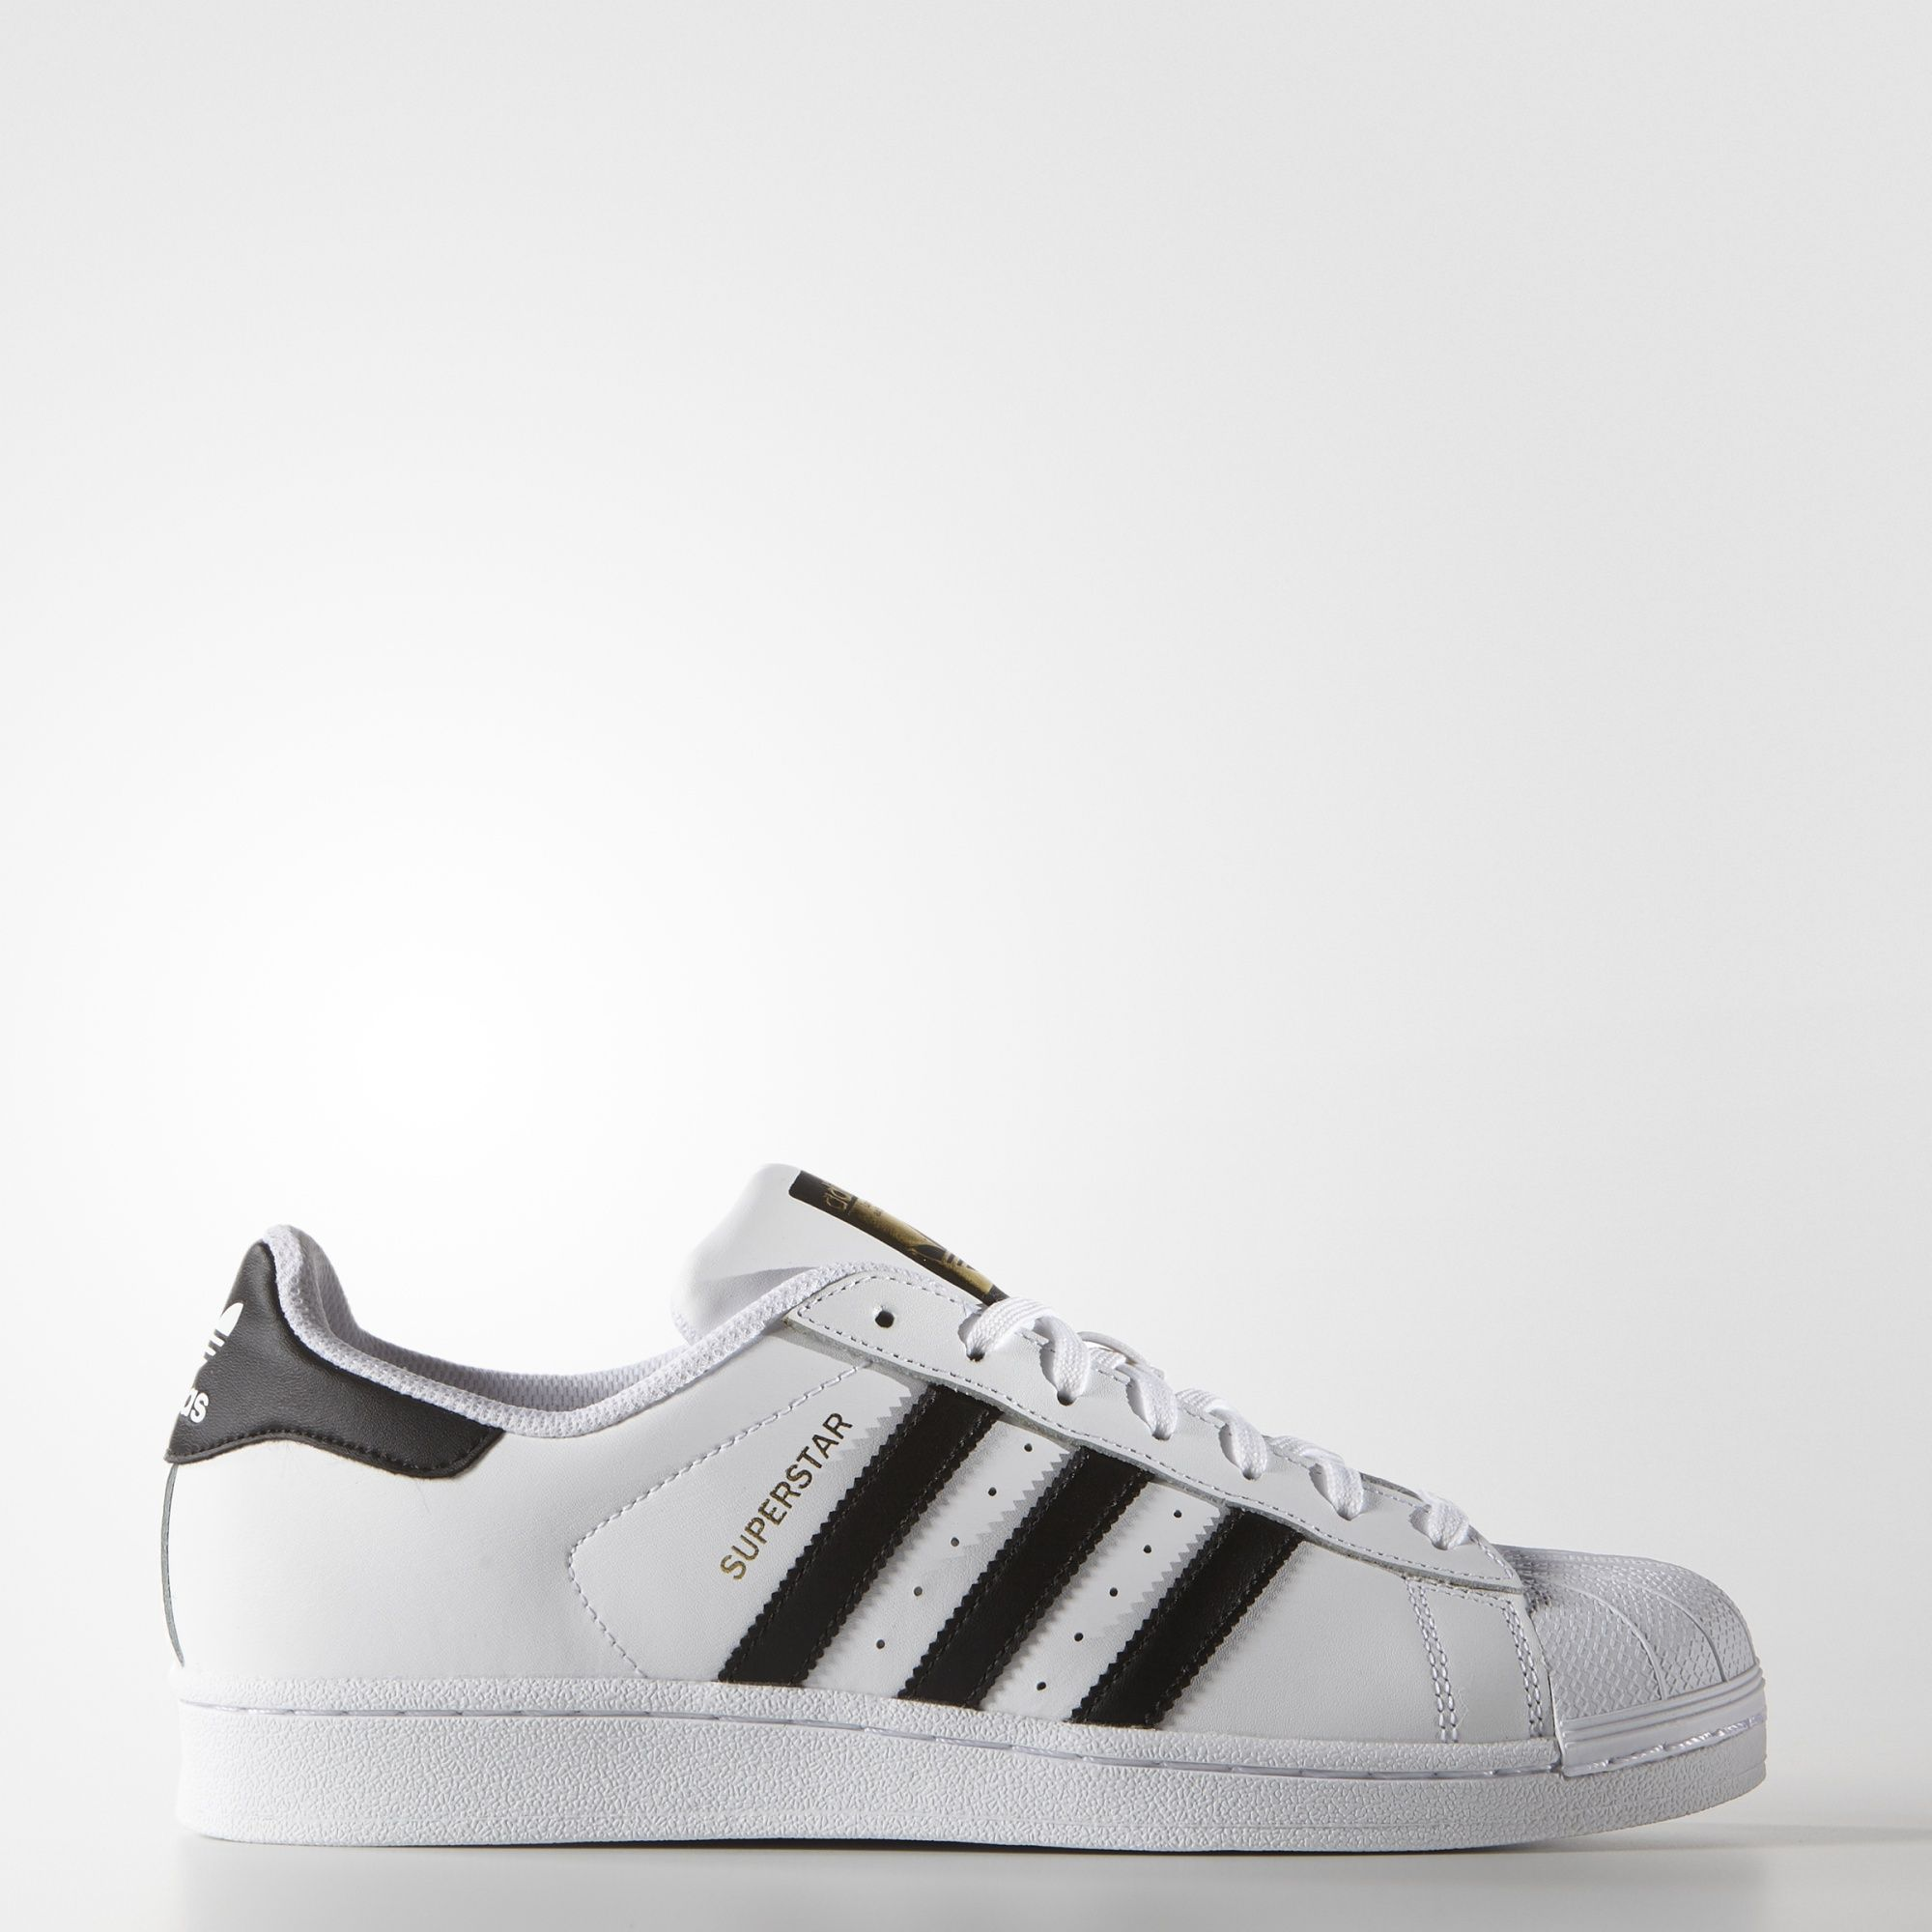 5e3ad826b5b These shoes honor the clean simplicity and premium materials of the original  adidas Superstar sneaker with a full grain leather upper and signature  rubber ...